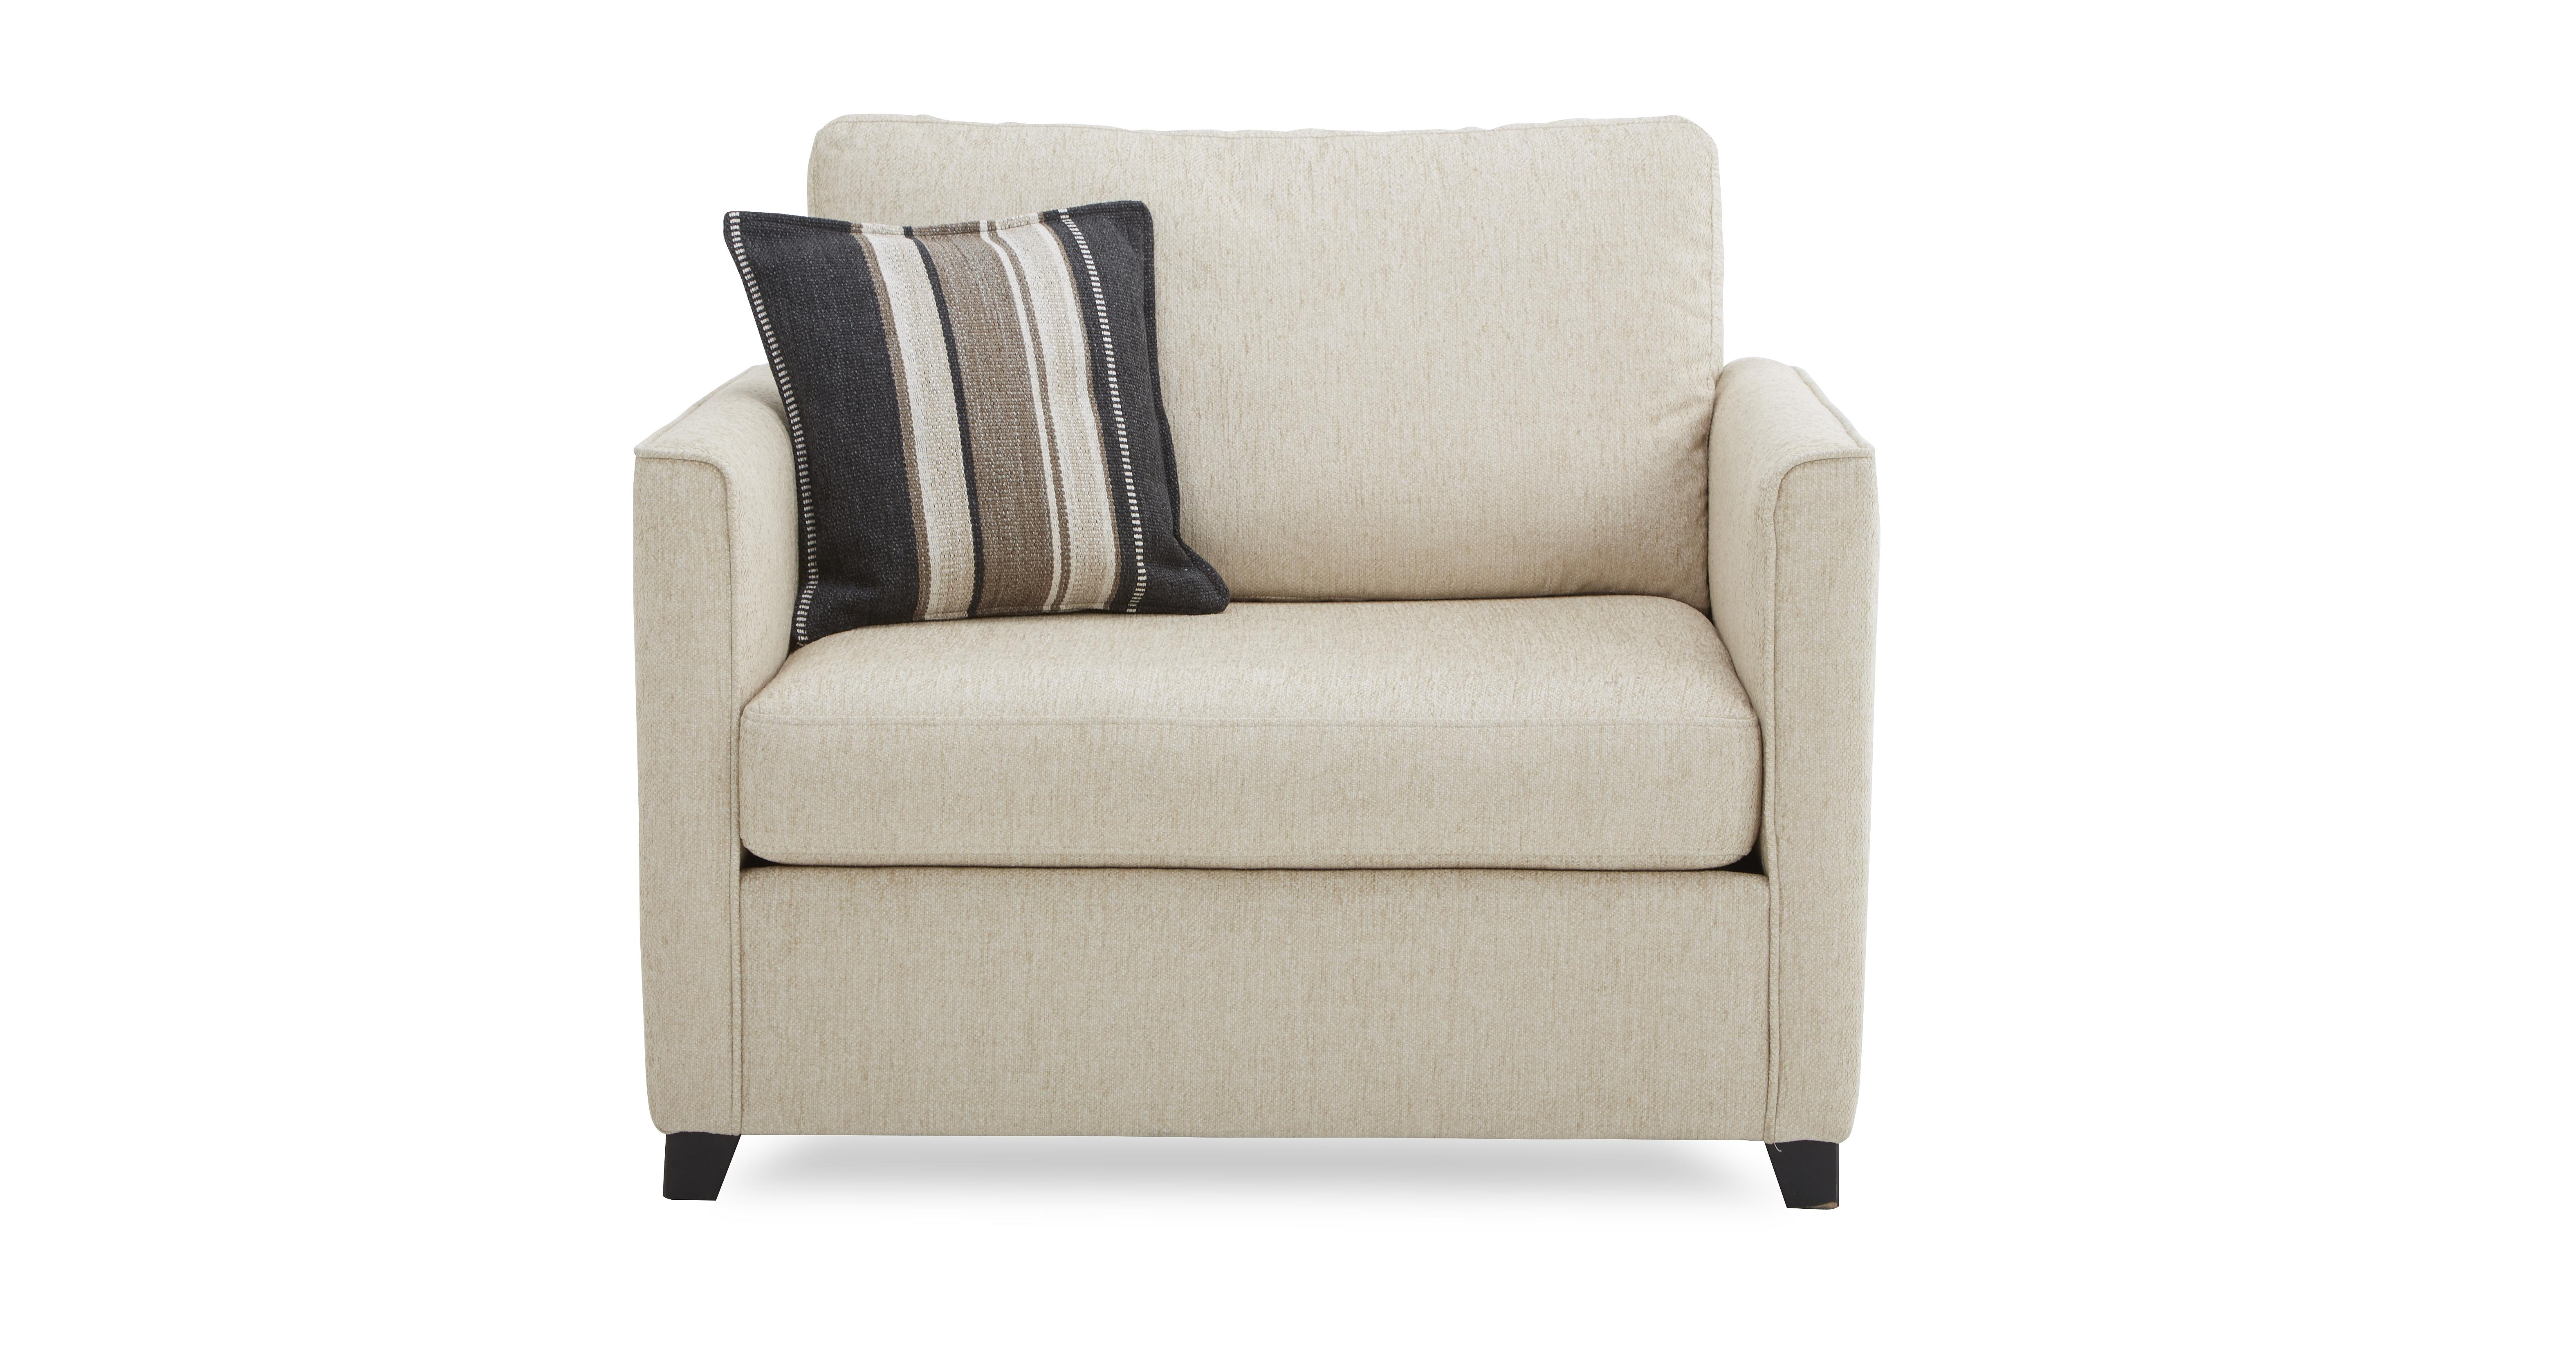 Sofa : Endearing Single Sofa Chair Best Bed 51 Sofas And Couches Inside Single Sofas (View 10 of 10)